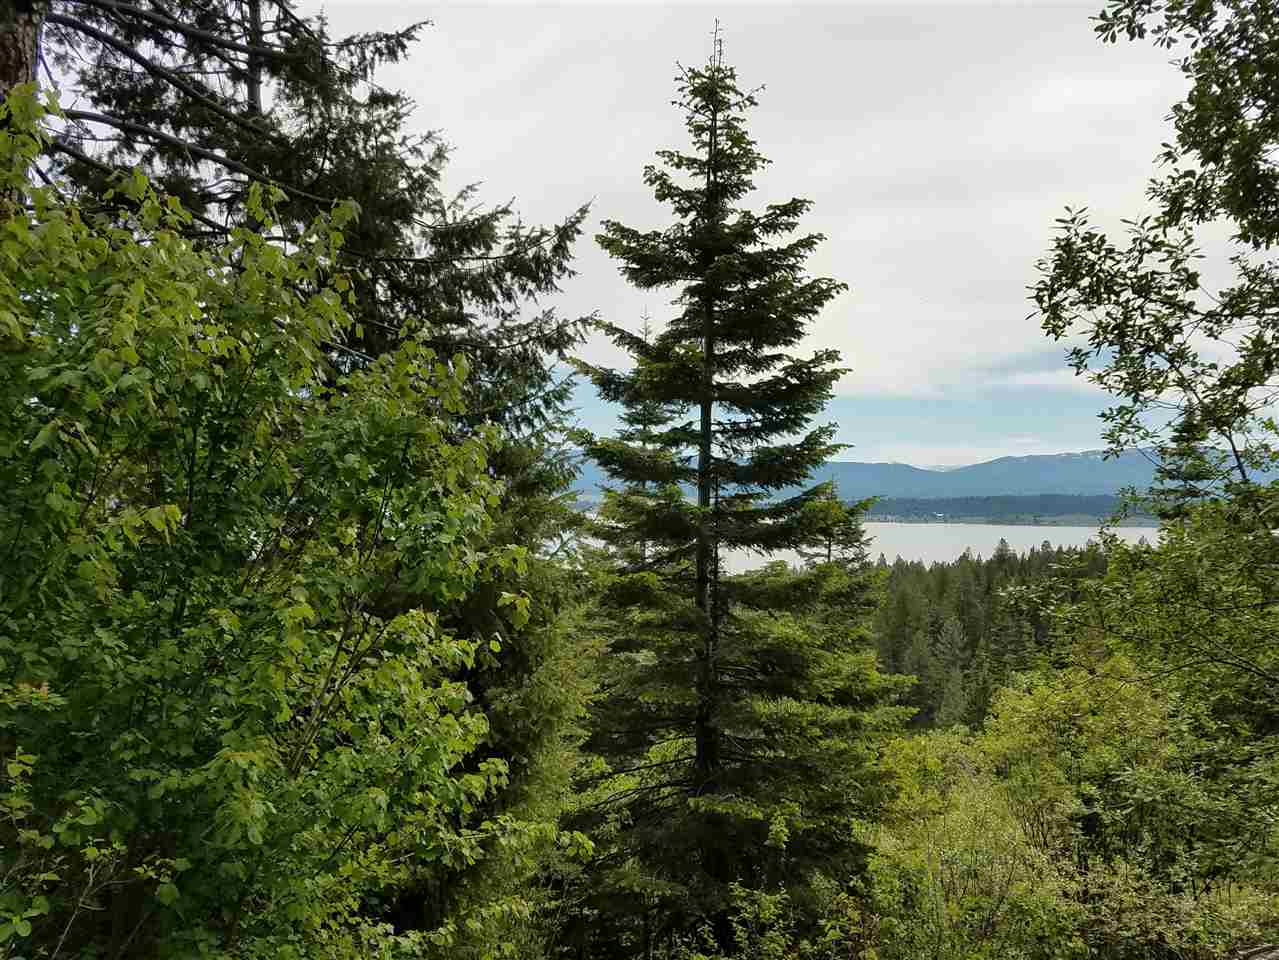 Recreational Property for Sale at TBD - M Anderson Creek TBD - M Anderson Creek Cascade, Idaho 83611